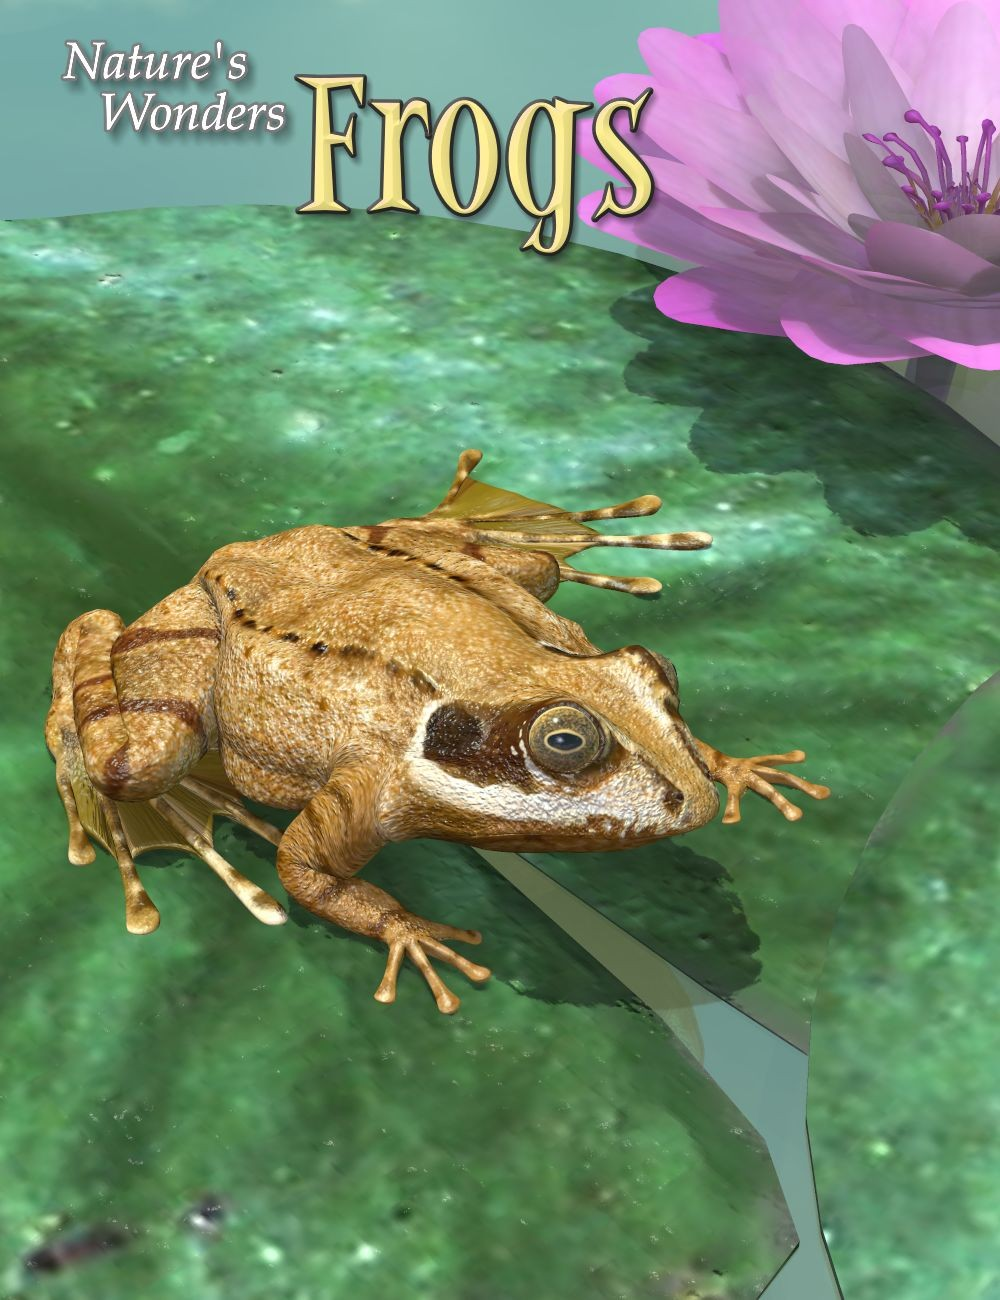 nature u0027s wonders frogs a ken gilliland creation at hivewire 3d